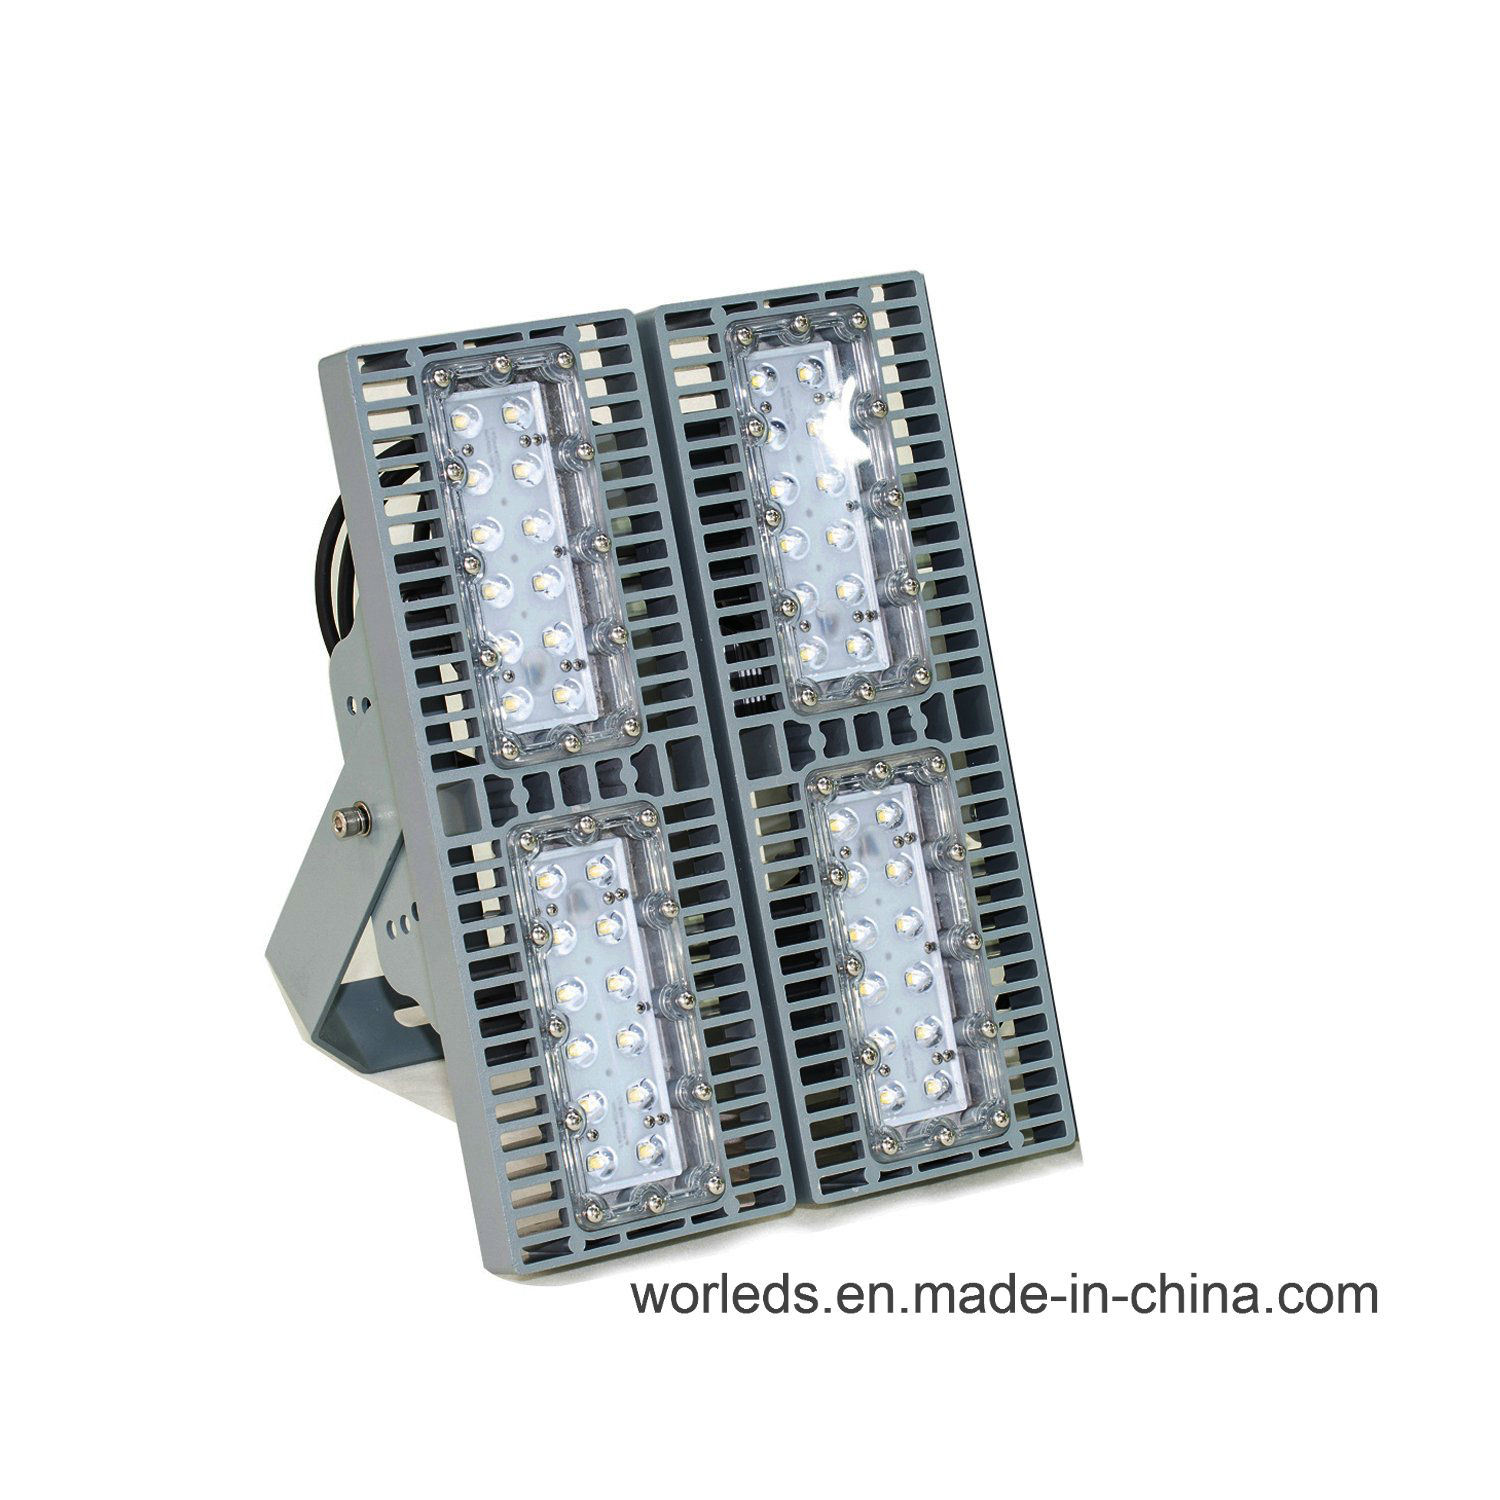 260W Outdoor LED Flood Light (BTZ 220/260 55 Y W)